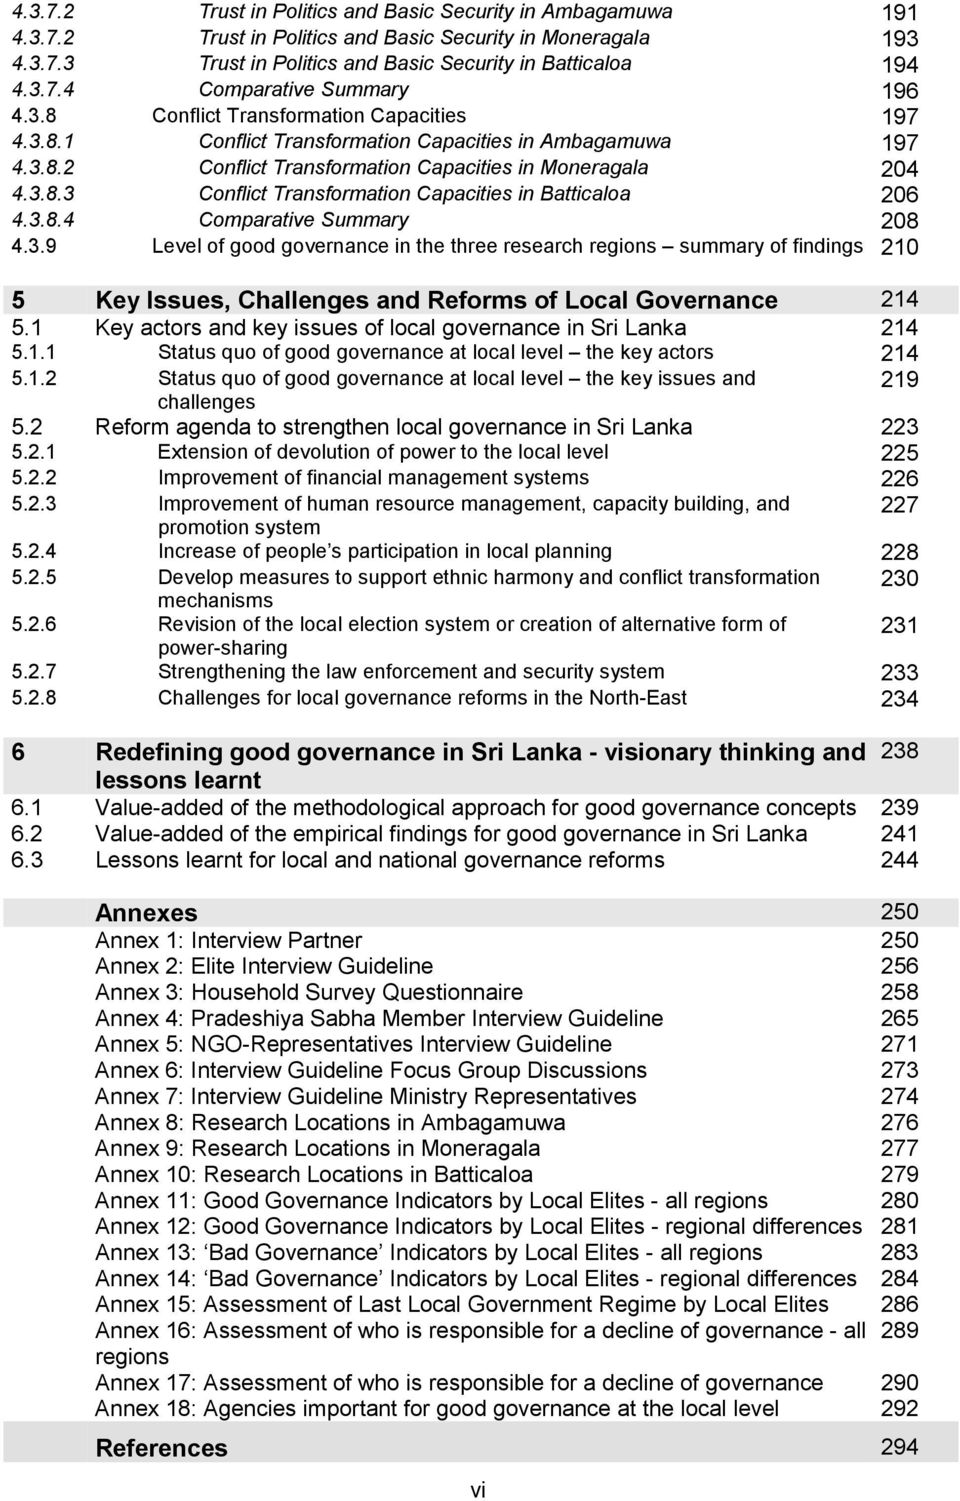 3.8.4 Comparative Summary 208 4.3.9 Level of good governance in the three research regions summary of findings 210 5 Key Issues, Challenges and Reforms of Local Governance 214 5.